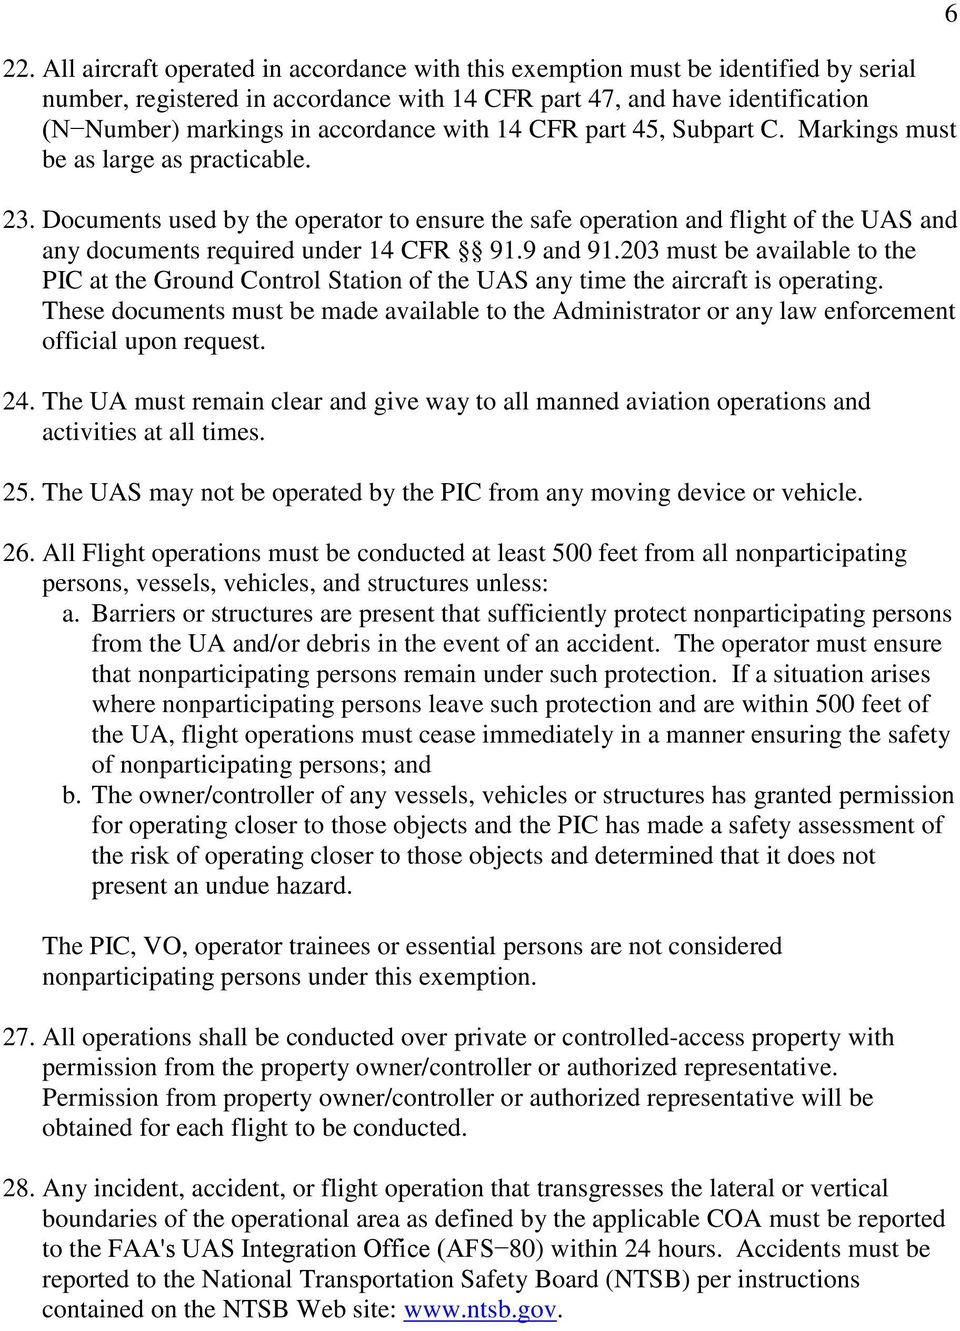 Documents used by the operator to ensure the safe operation and flight of the UAS and any documents required under 14 CFR 91.9 and 91.